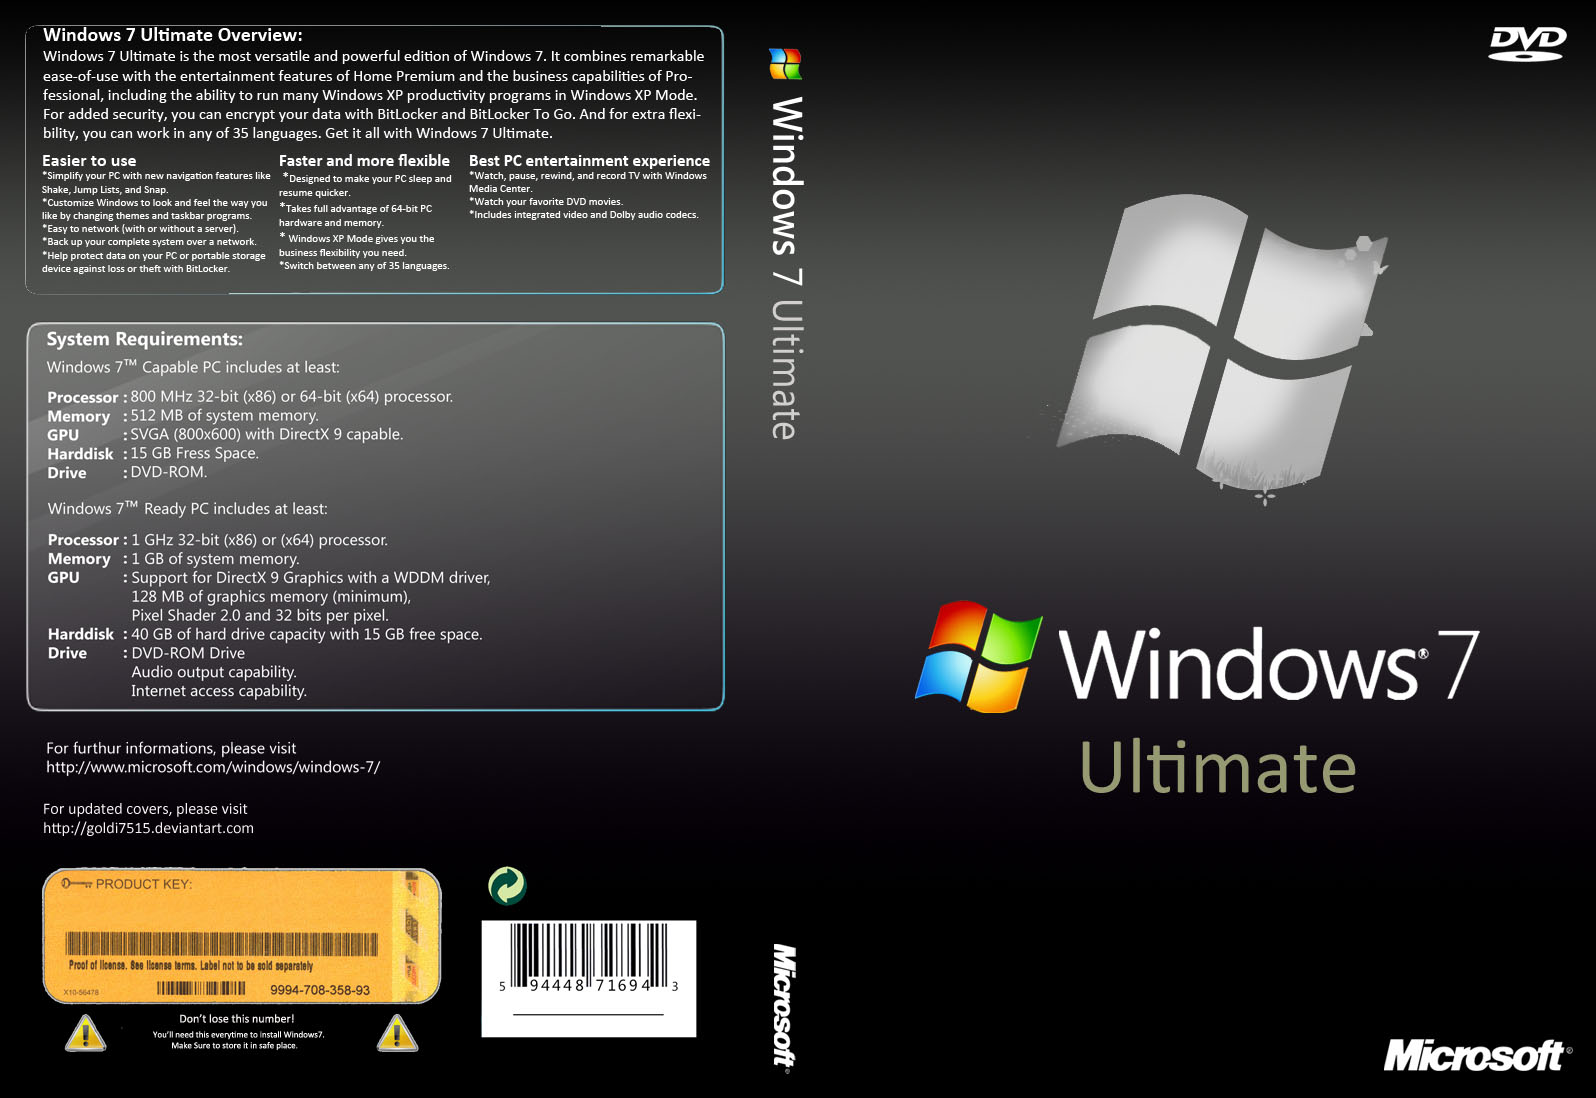 Windows xp Service Pack 3 Iso 9660 cd Image File Windows xp Service Pack 3